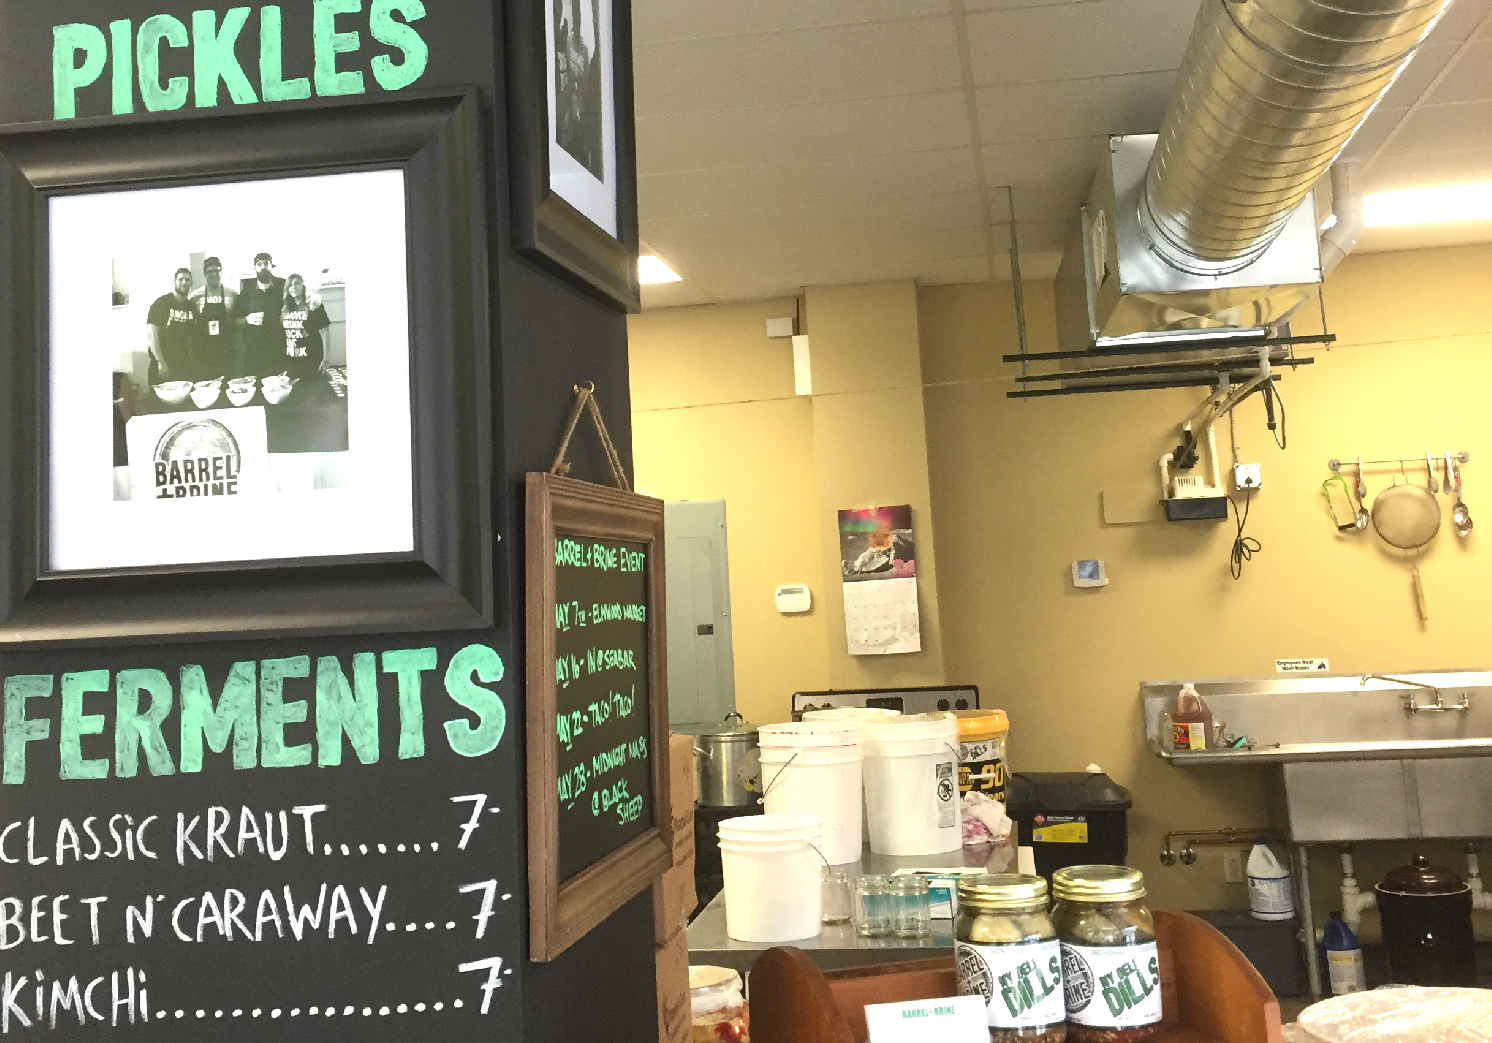 The little pickle factory at 257 Carolina St. has become a destination for fermented food fans. (Christa Glennie Seychew/Special to The News)